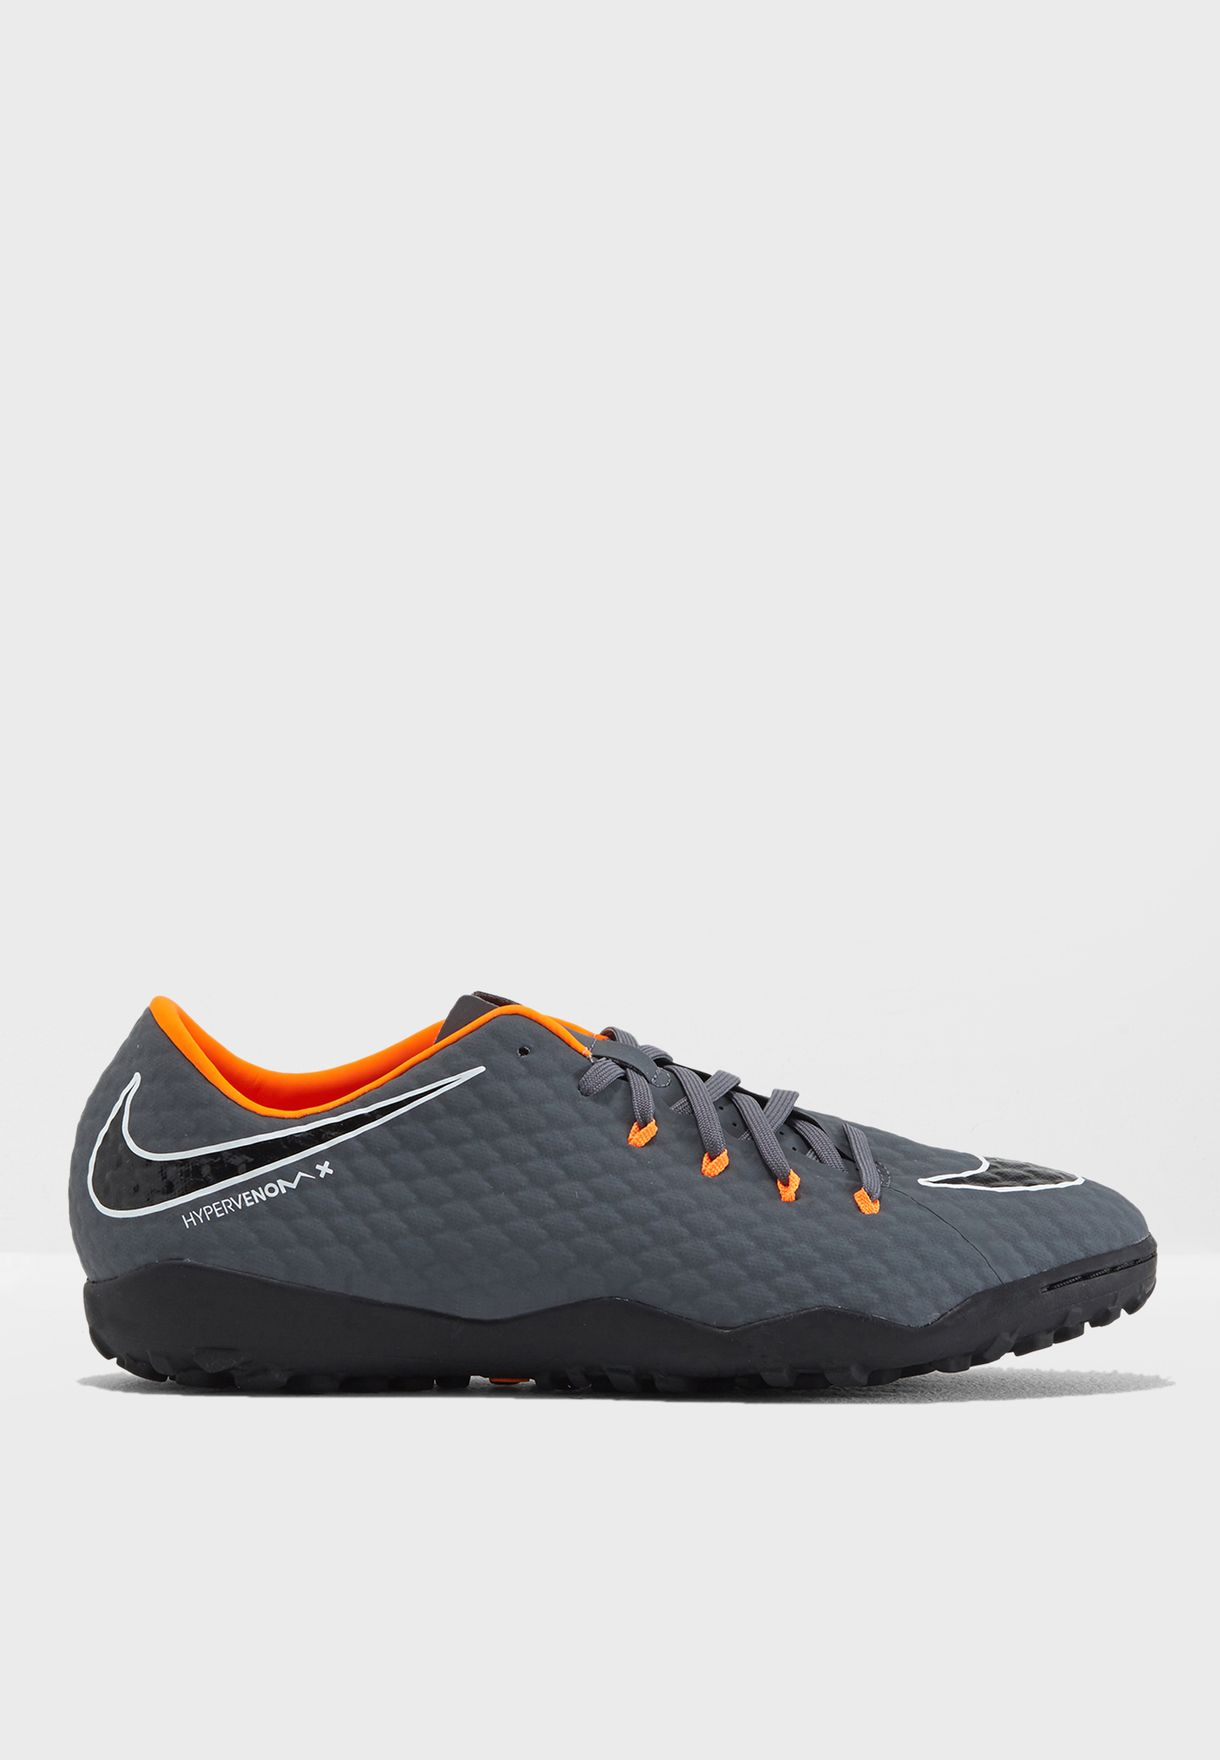 low priced ae7c1 e602e Hypervenom Phantomx 3 Academy TF